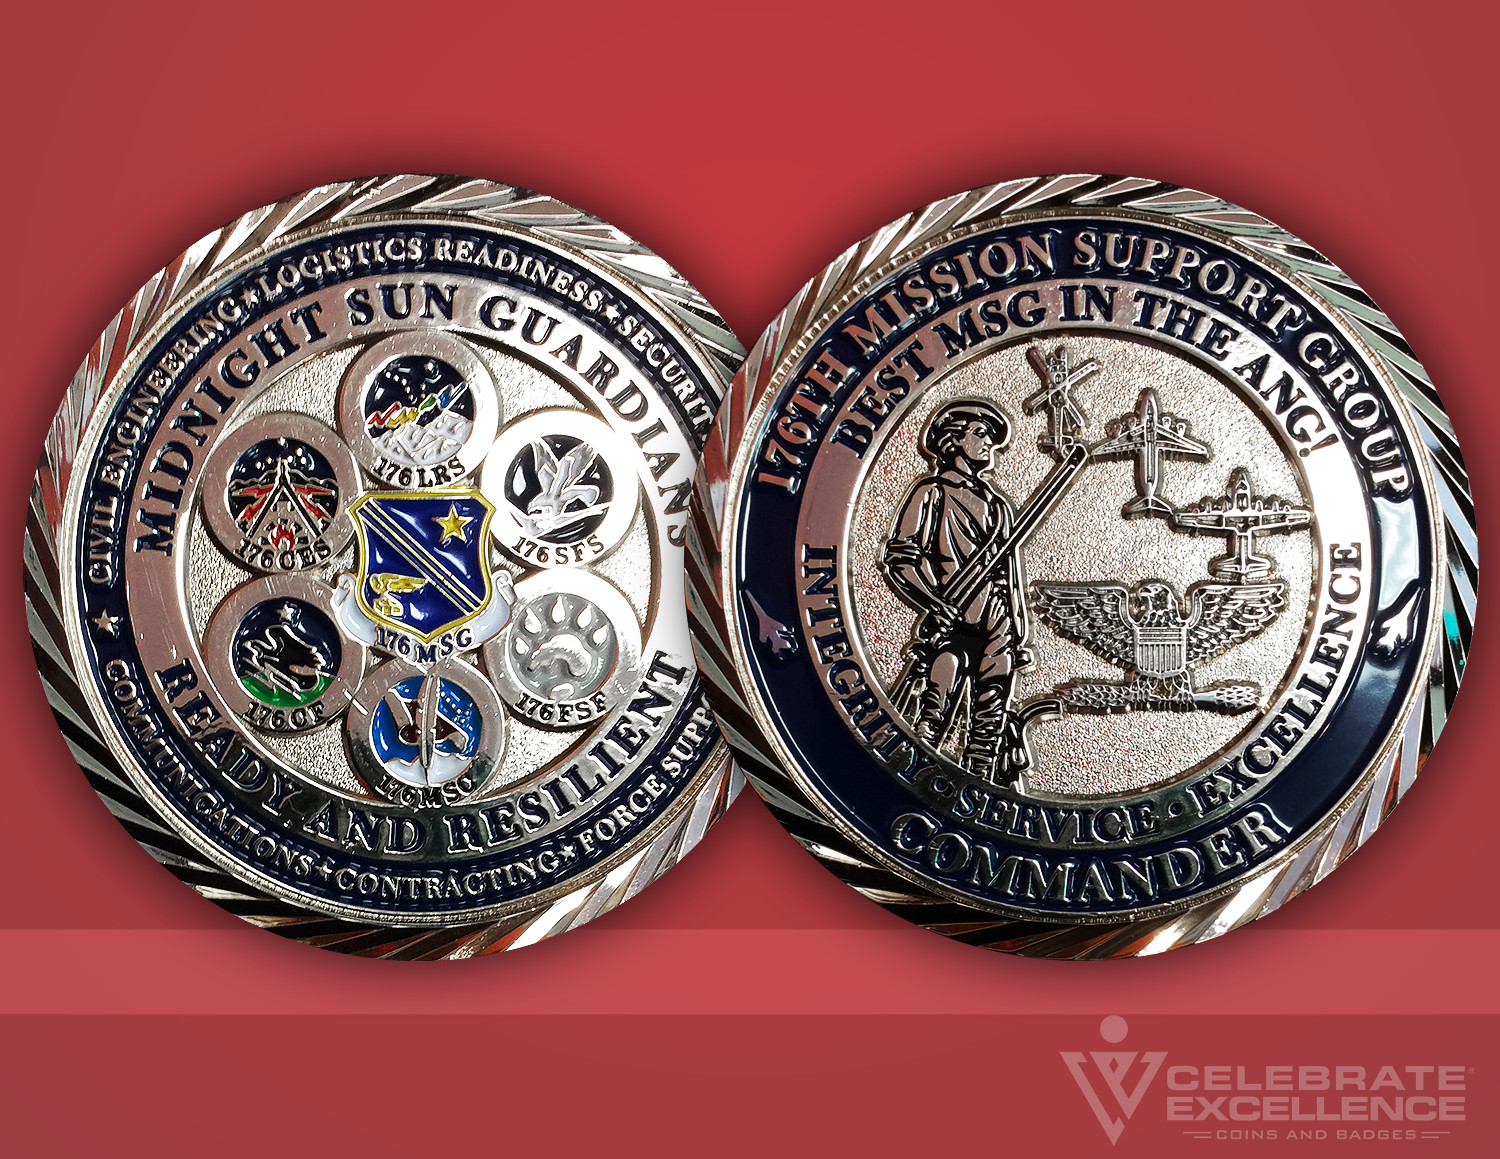 Celebrate Excellence 176th Mission Support Group Challenge Coin